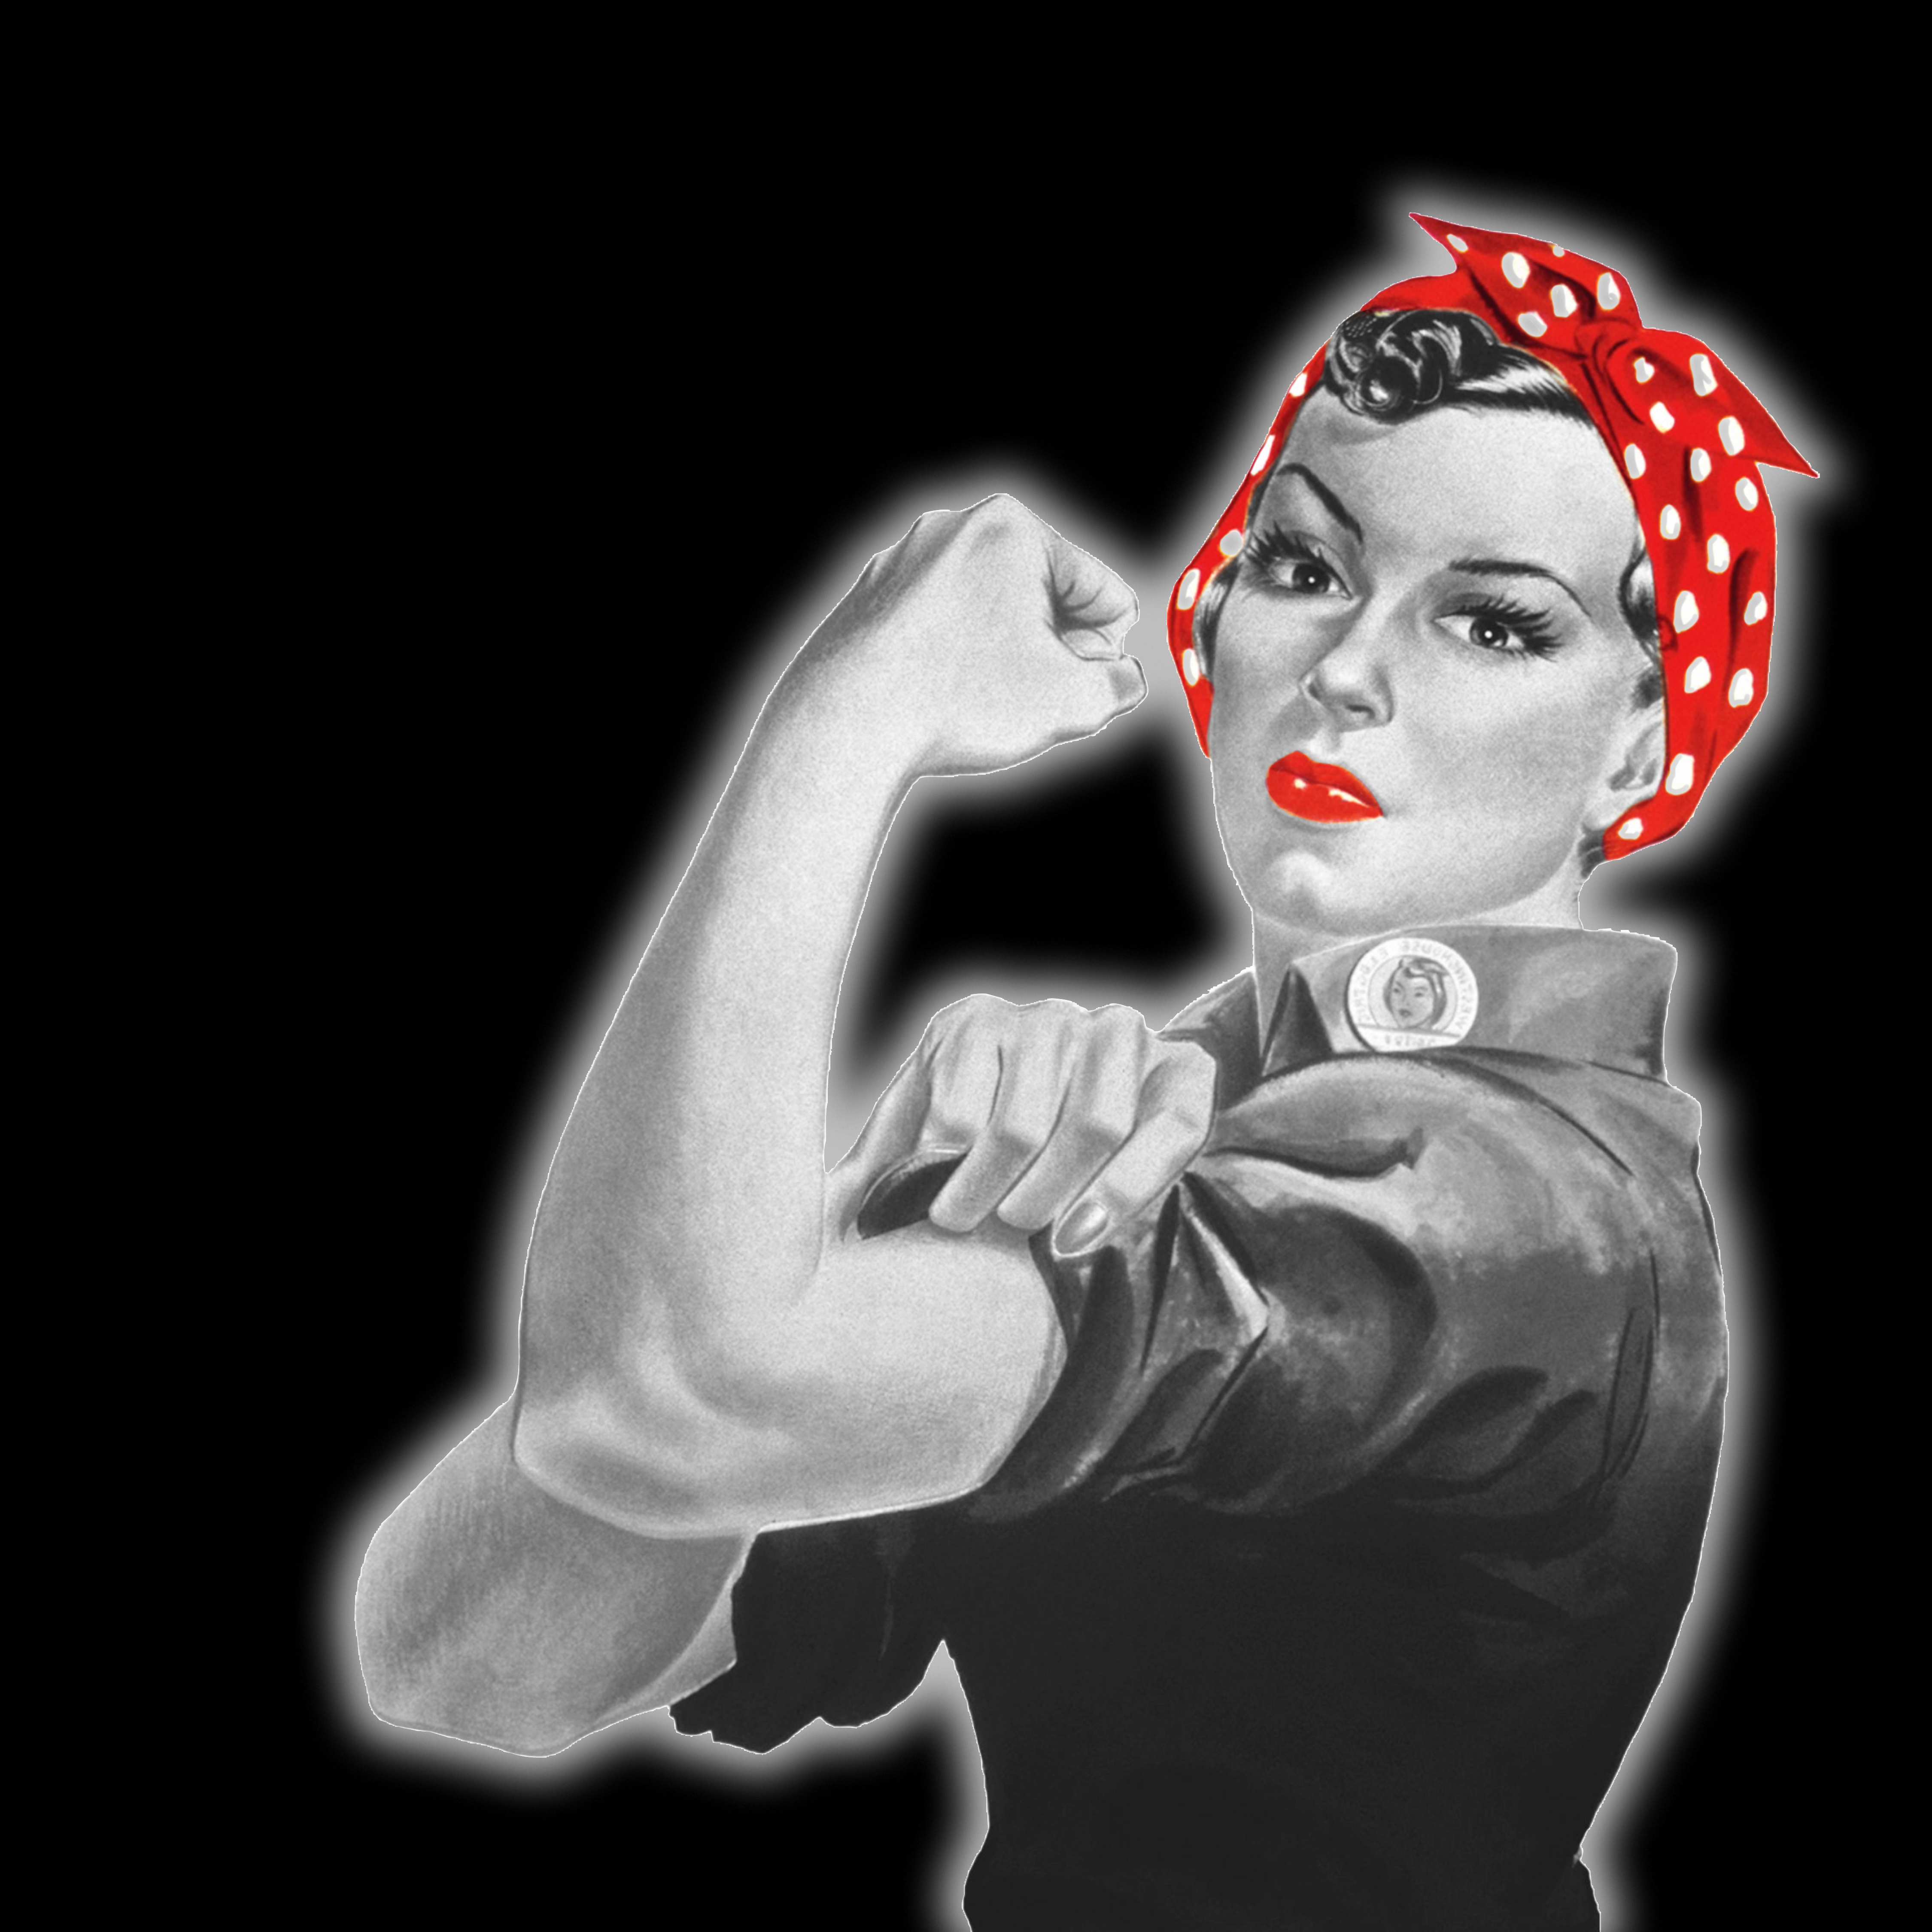 Black and white version of iconic image of World War !! woman in overalls with hair wrapped up in a spotted red scarf and red lipstick